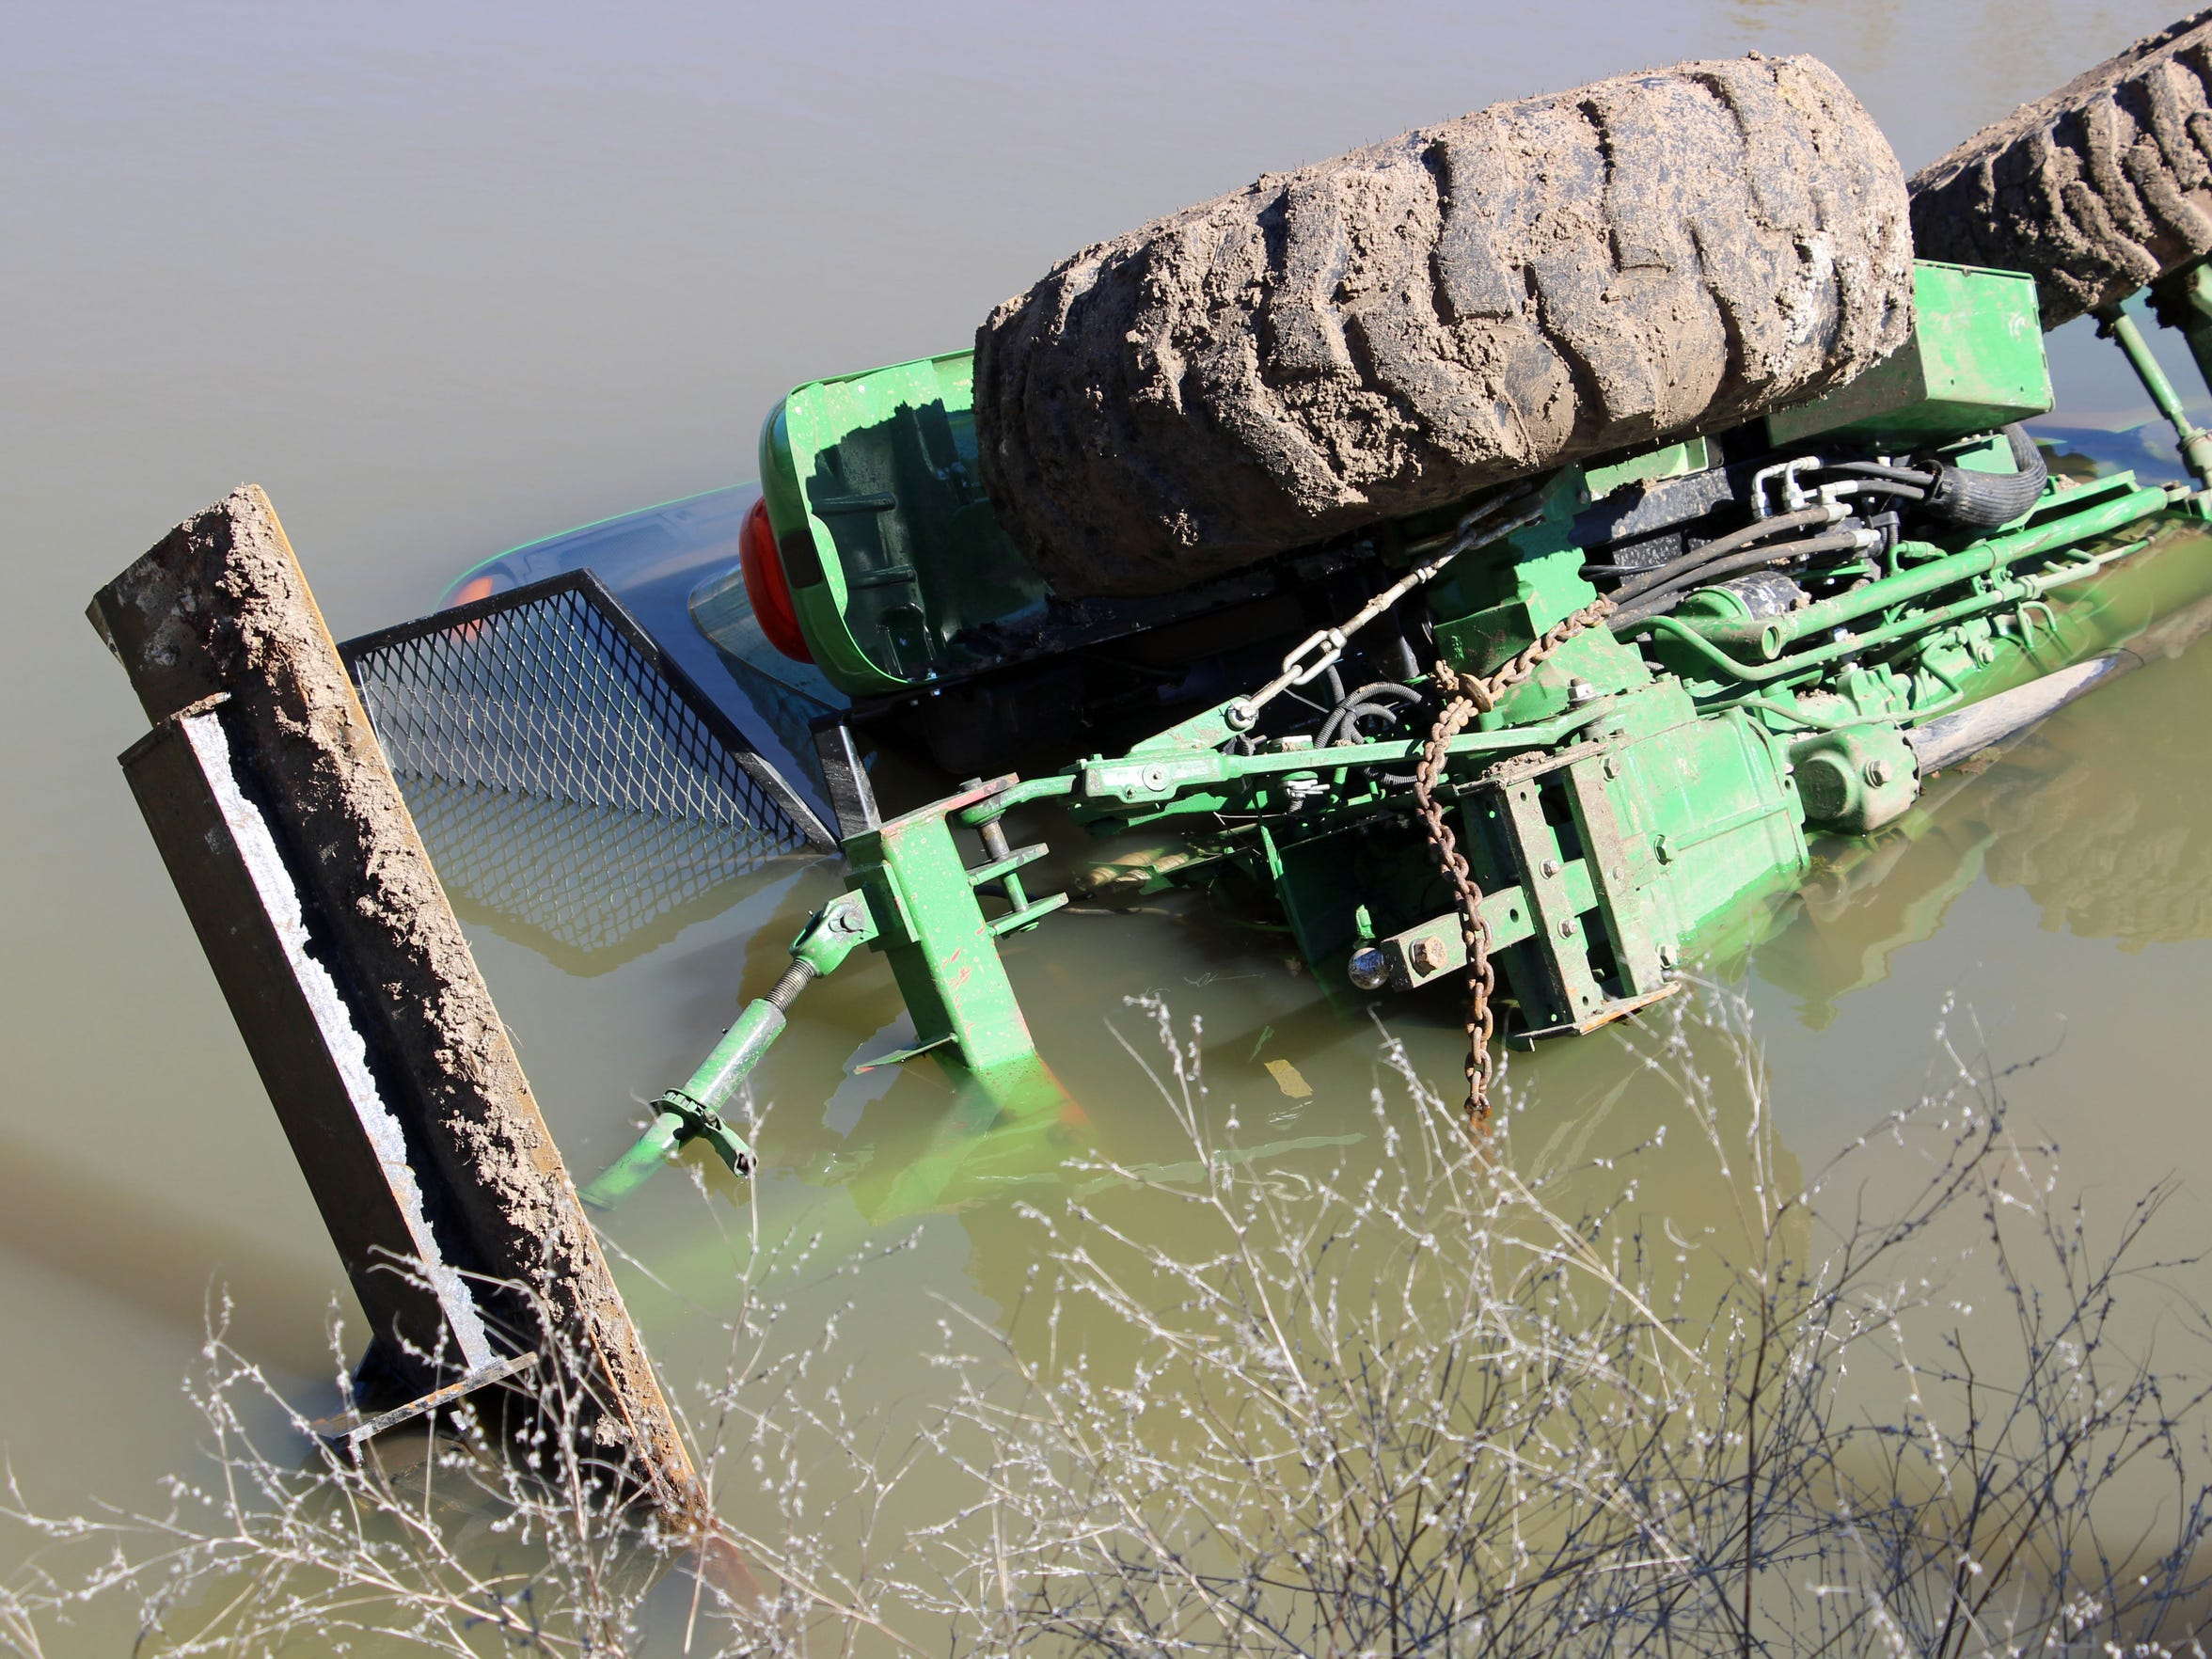 A picture of the tractor a day later shows how far the water level dropped compared to the night Eldon Cooper was rescued from the cab of the tractor after it rolled and flipped, trapping him inside the submerged cab.